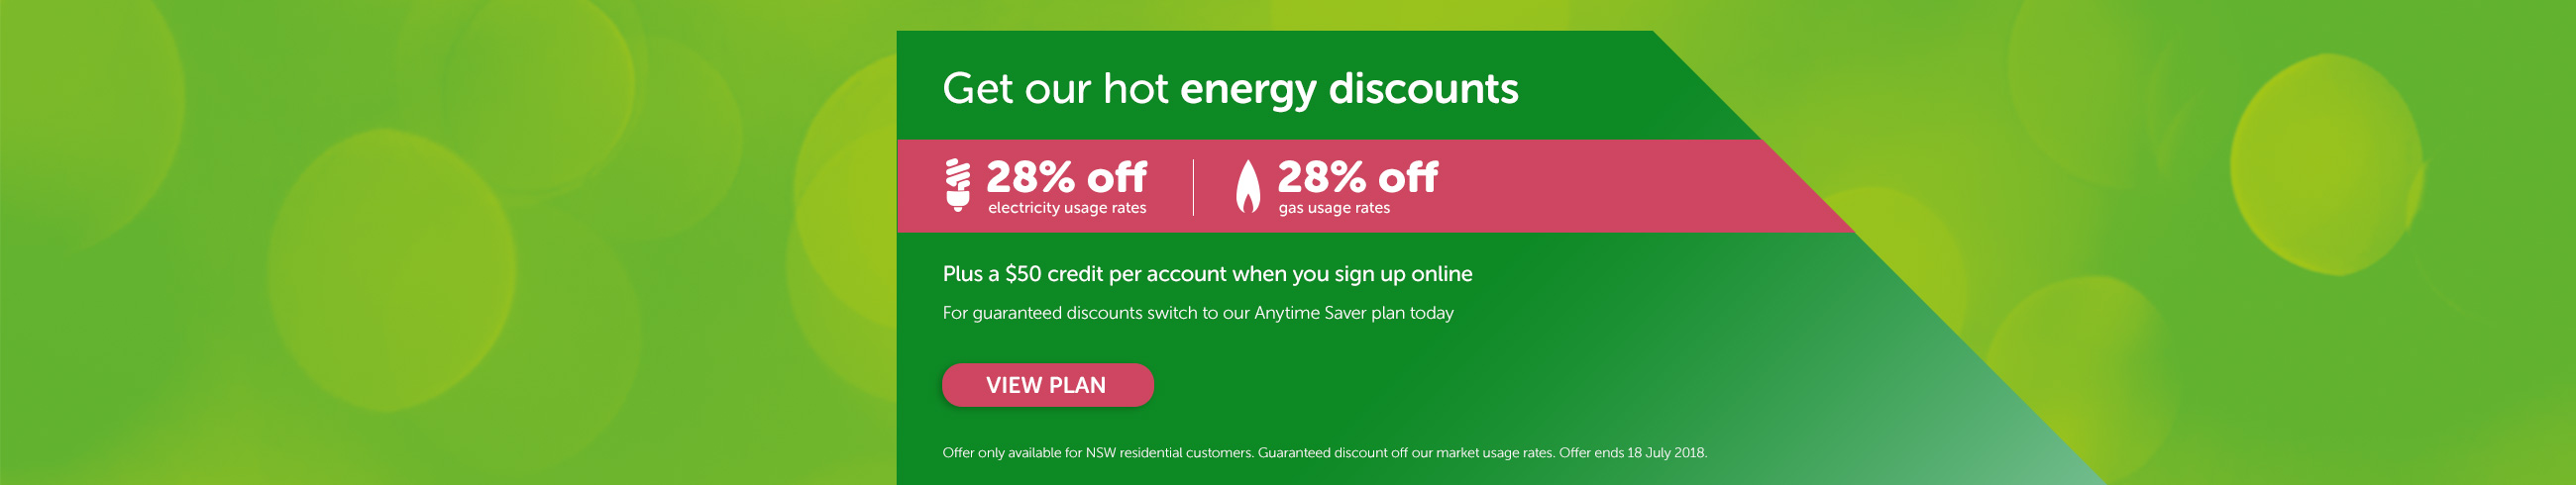 Get out hot energy discounts - Plus a $50 credit per account when you sign up online